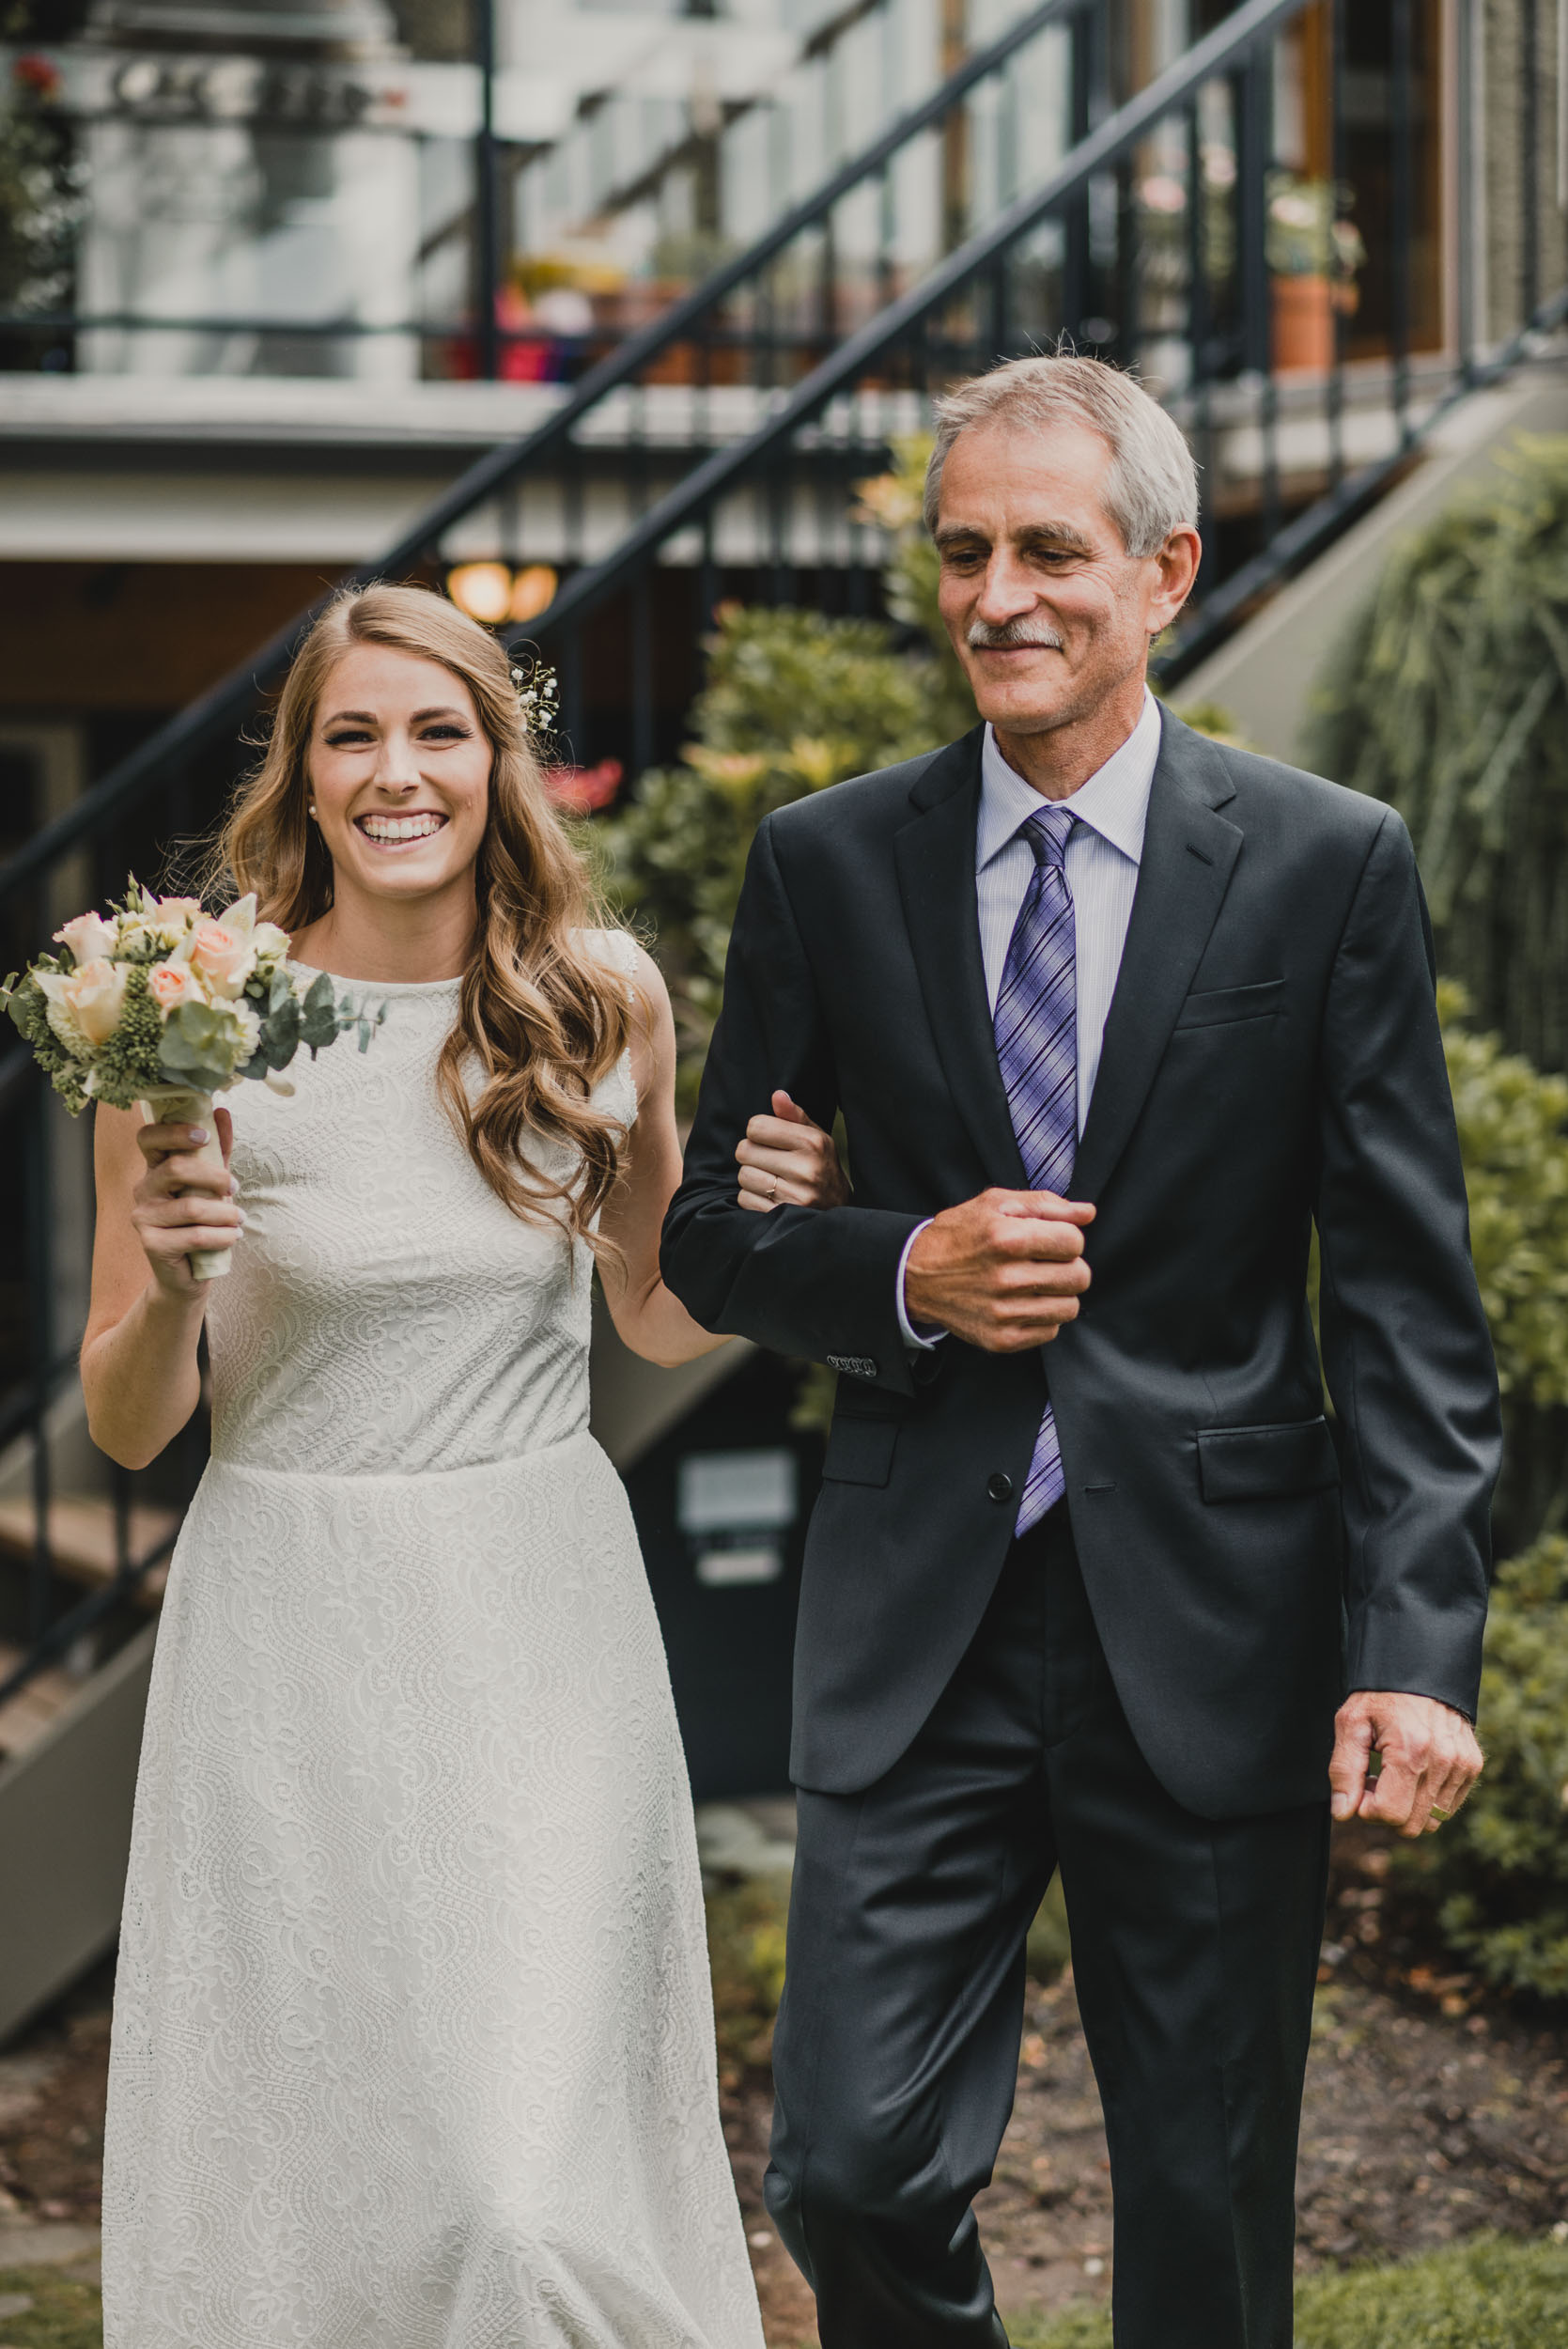 Father of the Bride walks her to altar